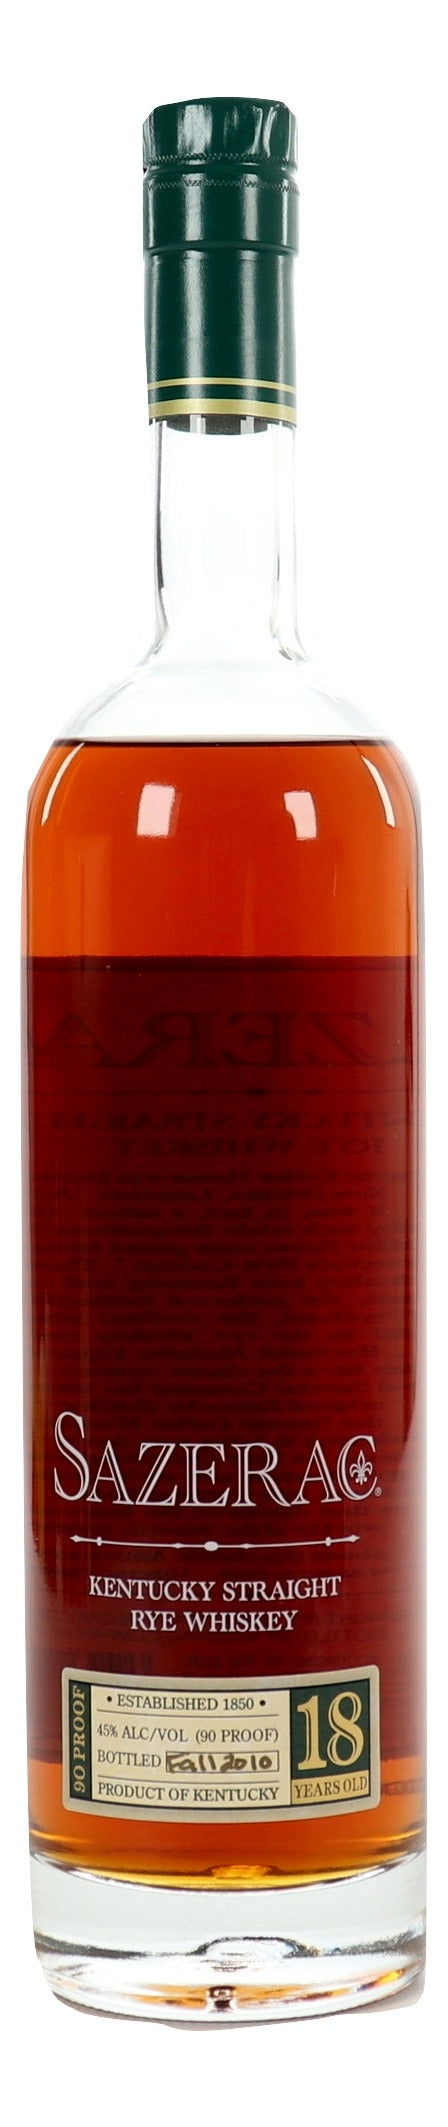 Sazerac 18 Year Old Rye 2010 For Sale - NativeSpiritsOnline